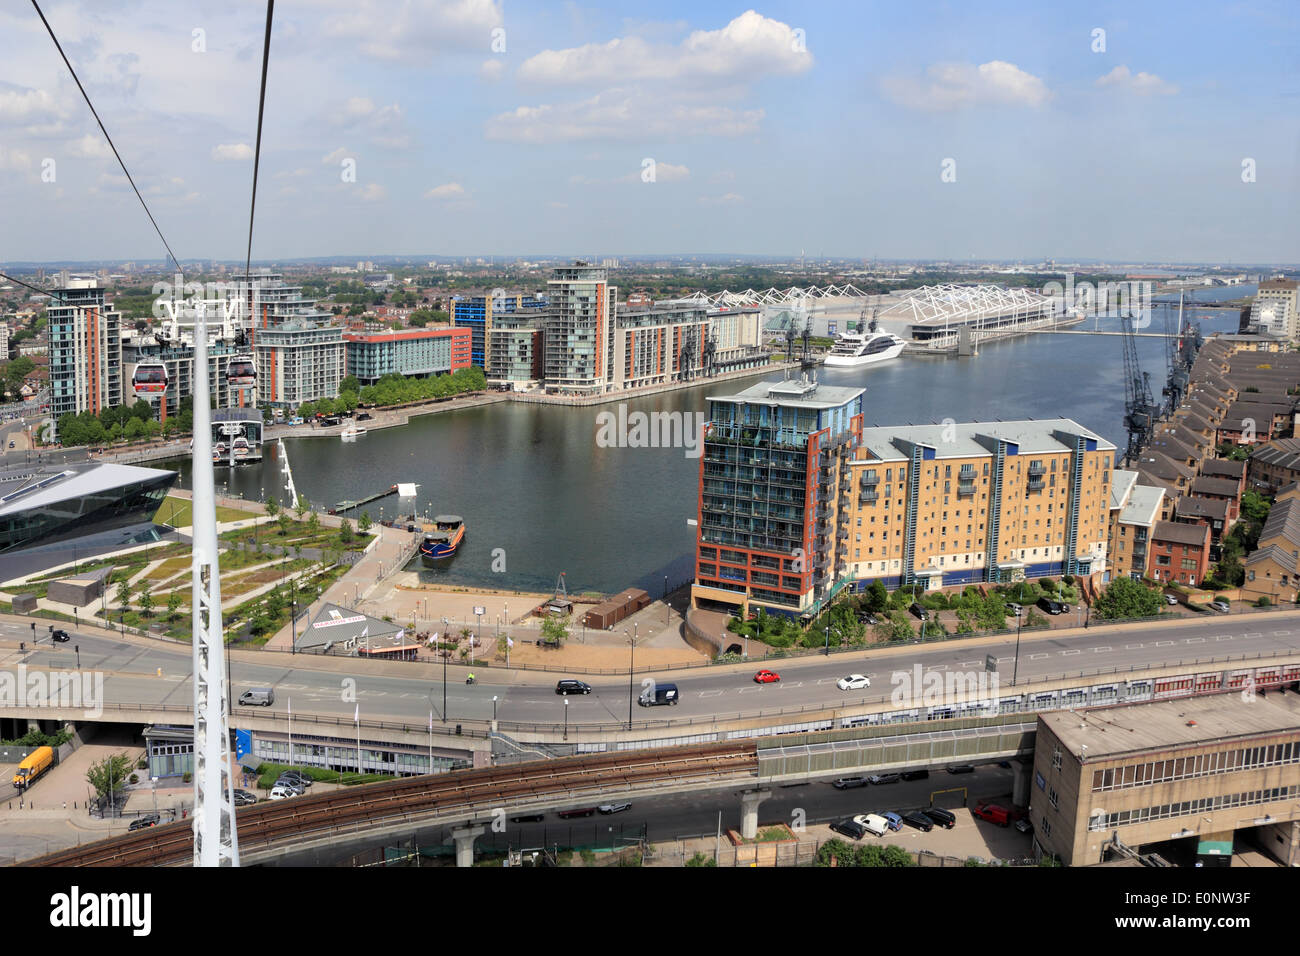 Emirates Air Line Cable Car at Royal Victoria Dock, London, England, UK. - Stock Image